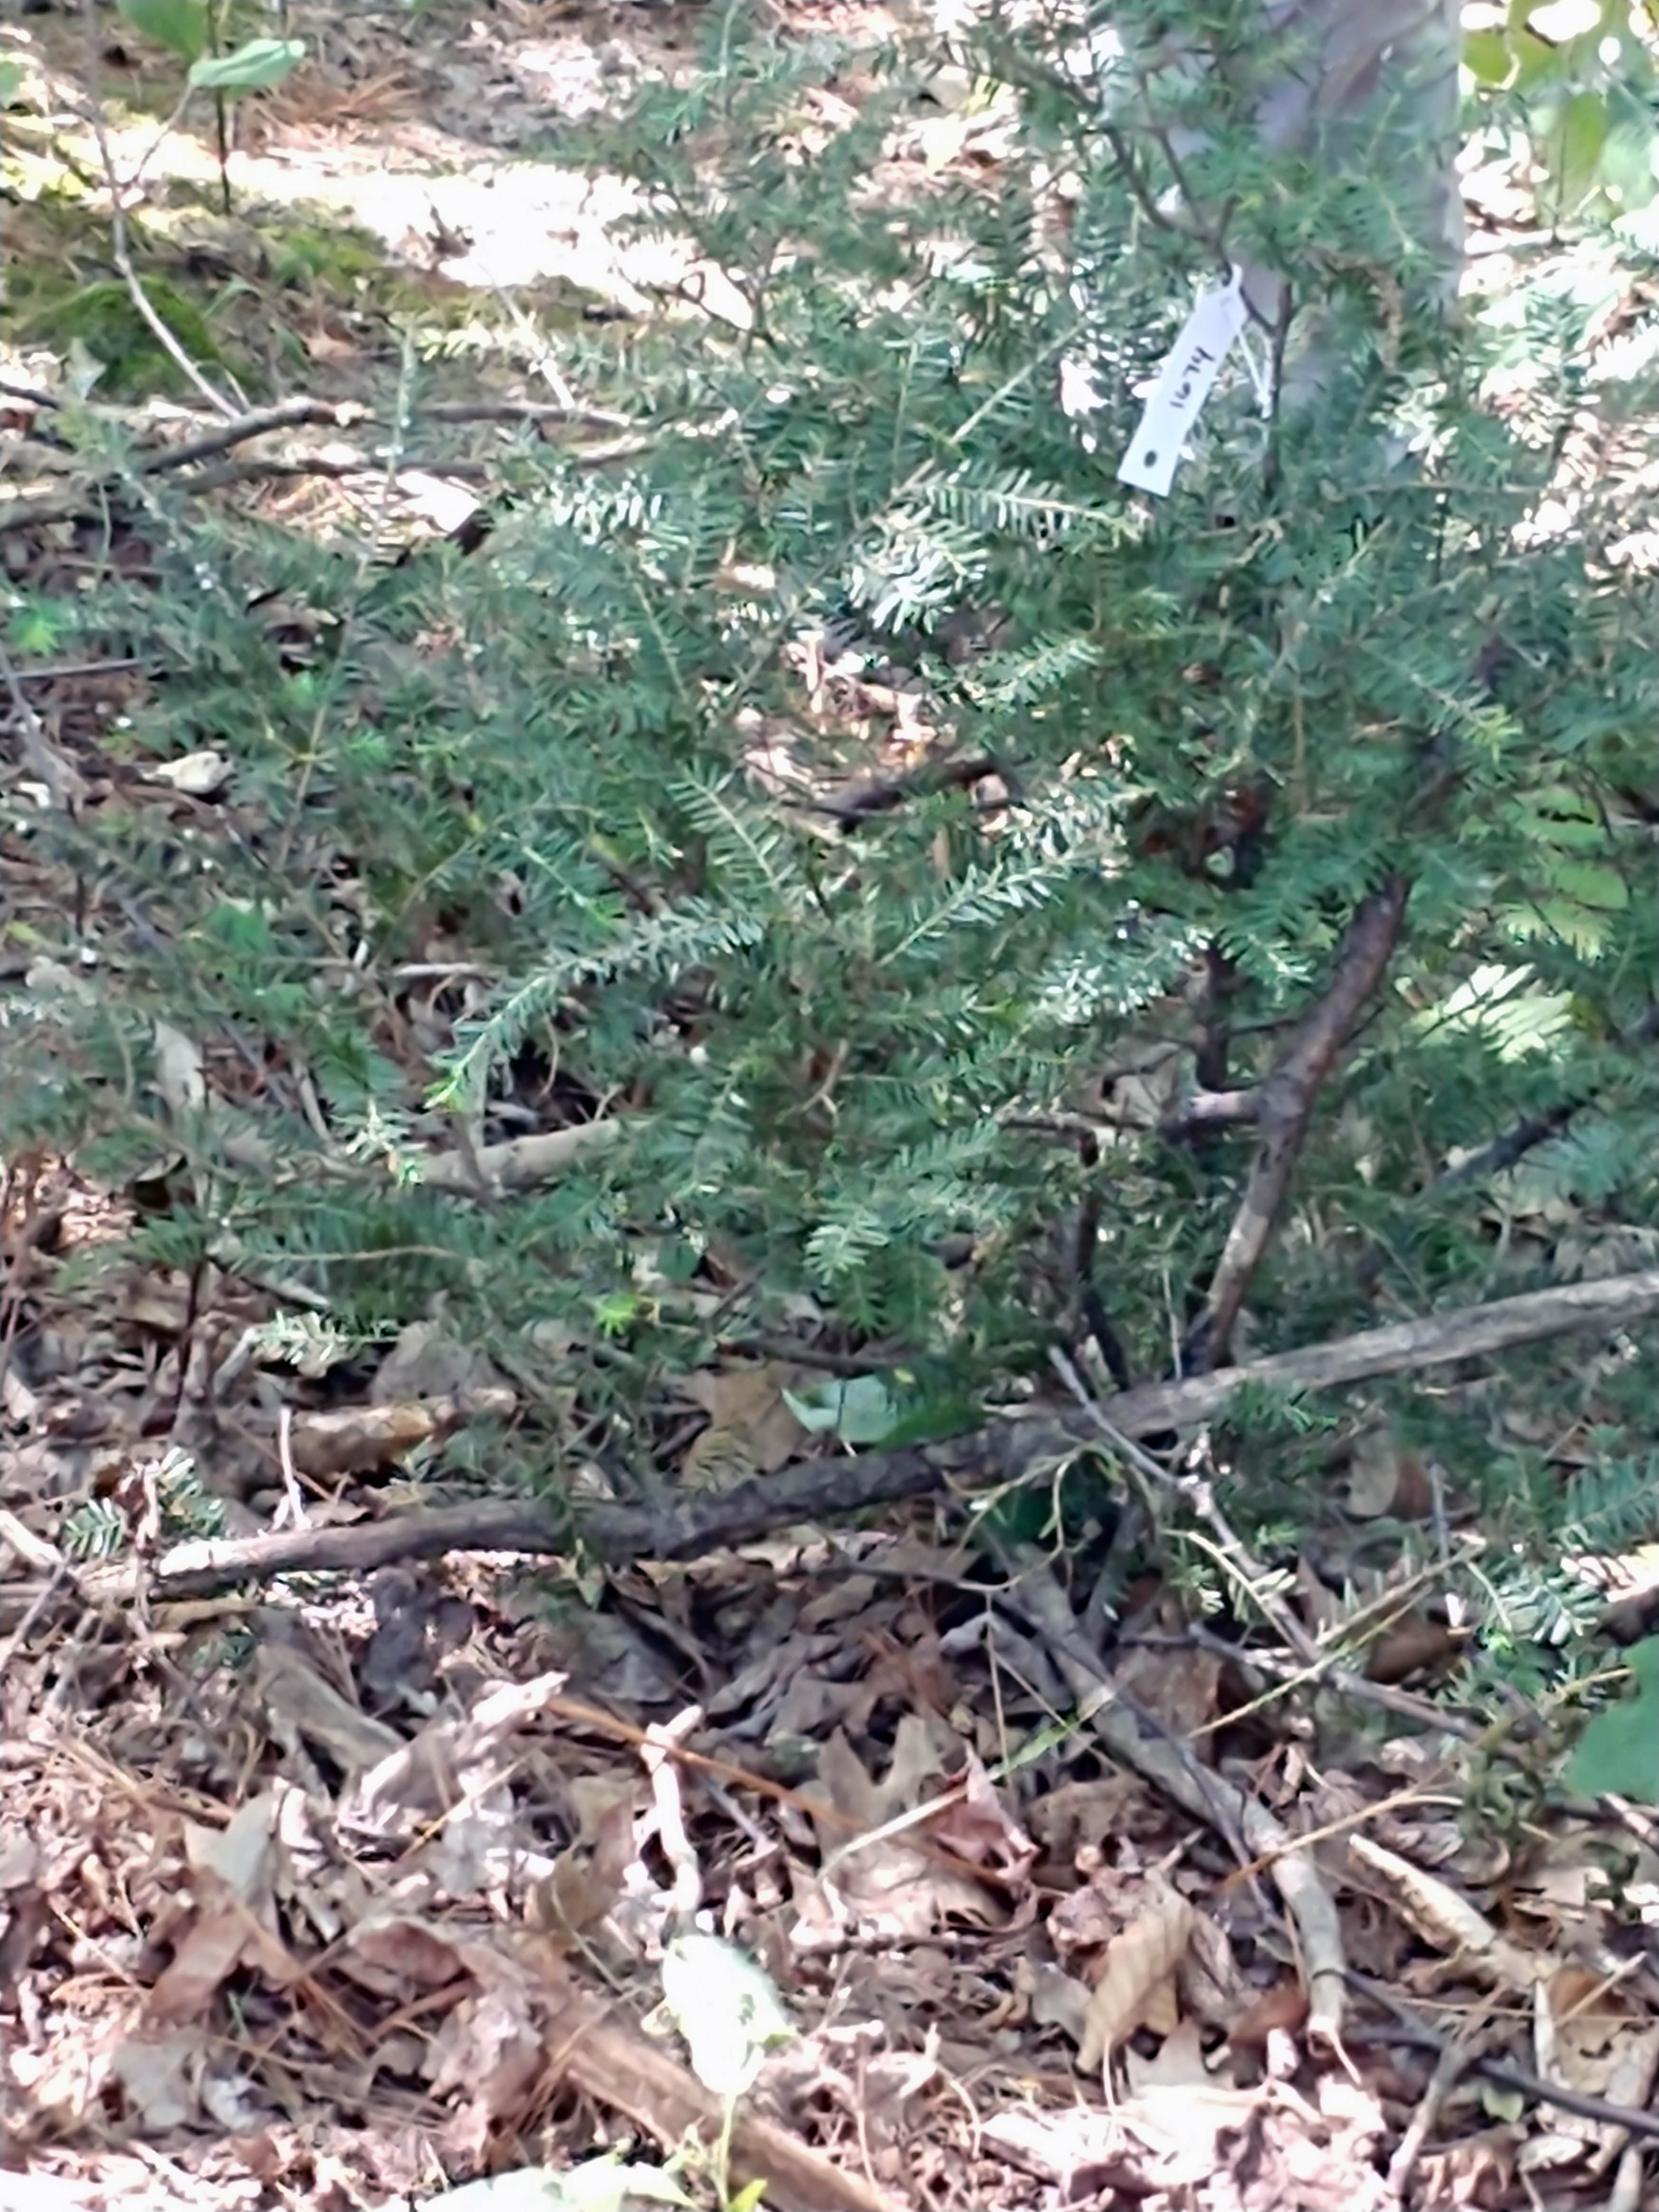 Showcasing the DNR: Protecting Michigan's valuable hemlock trees